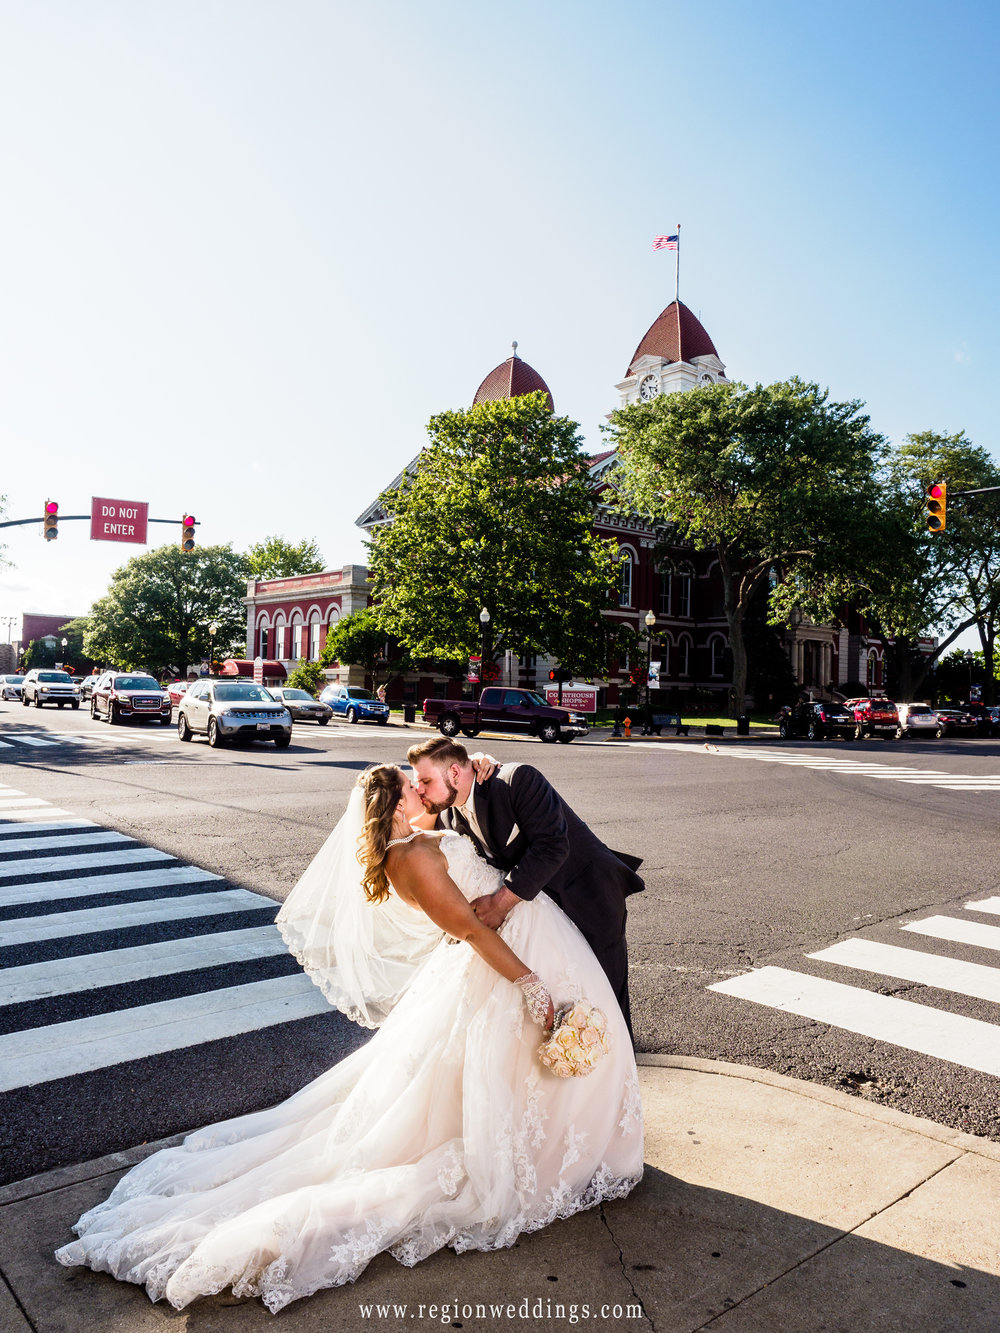 The groom dips his bride in downtown Crown Point, Indiana.